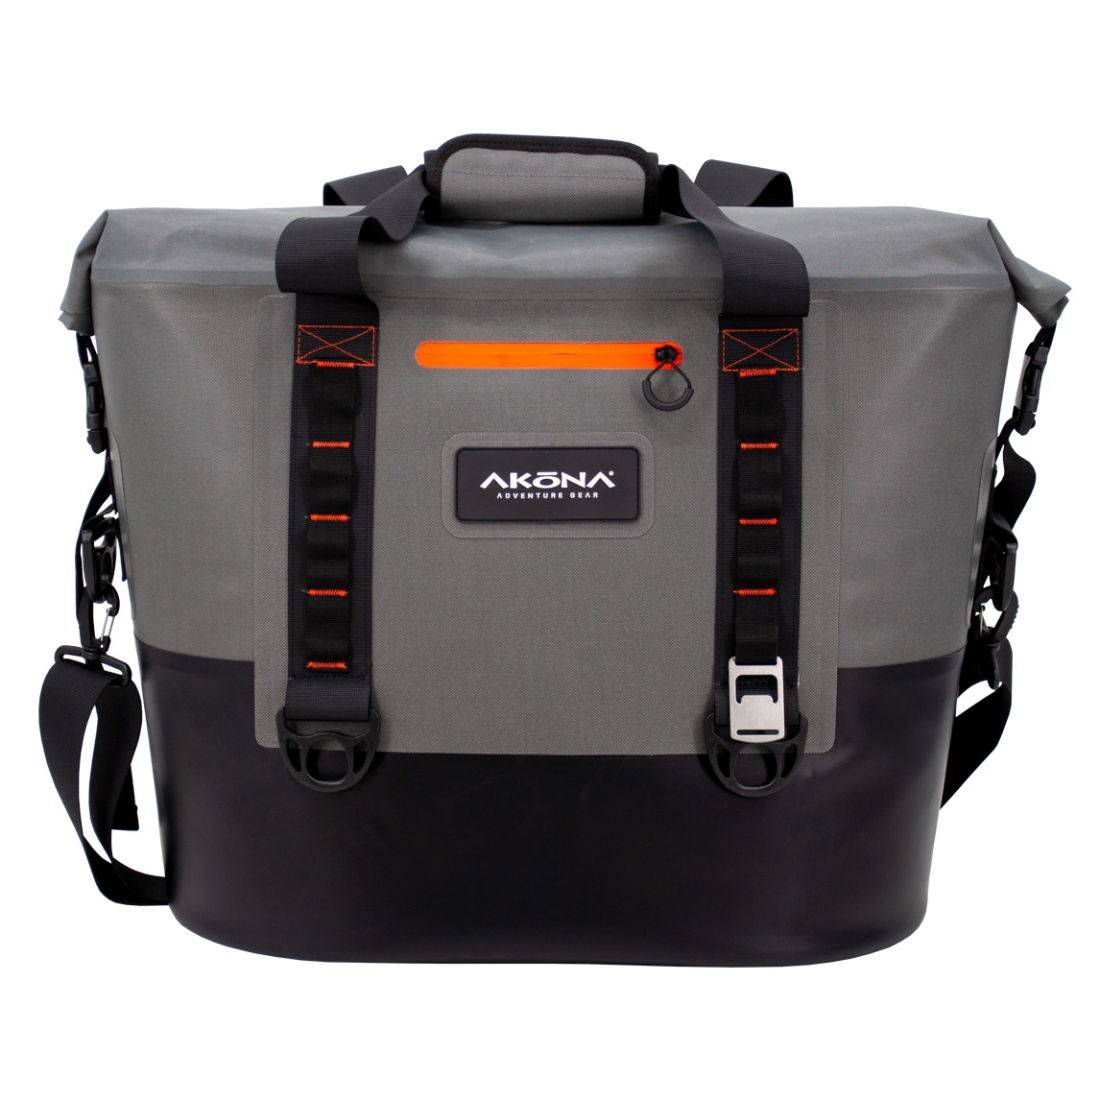 BAFFIN TOTE SOFT COOLER - AKB930 Front Closed